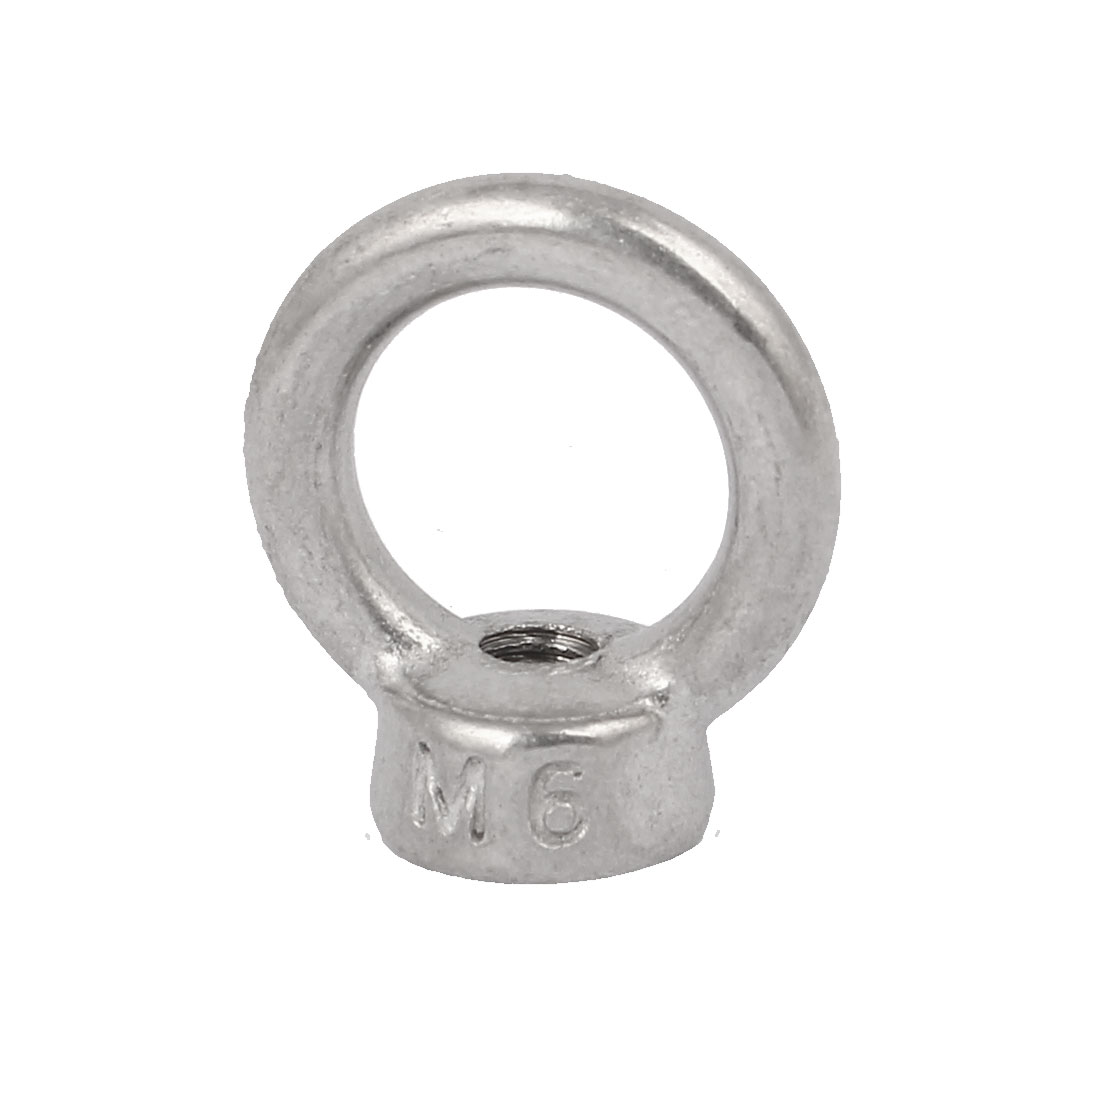 M6 Thread Dia 304 Stainless Steel Ring Shape Lifting Eye Nut Silver Tone